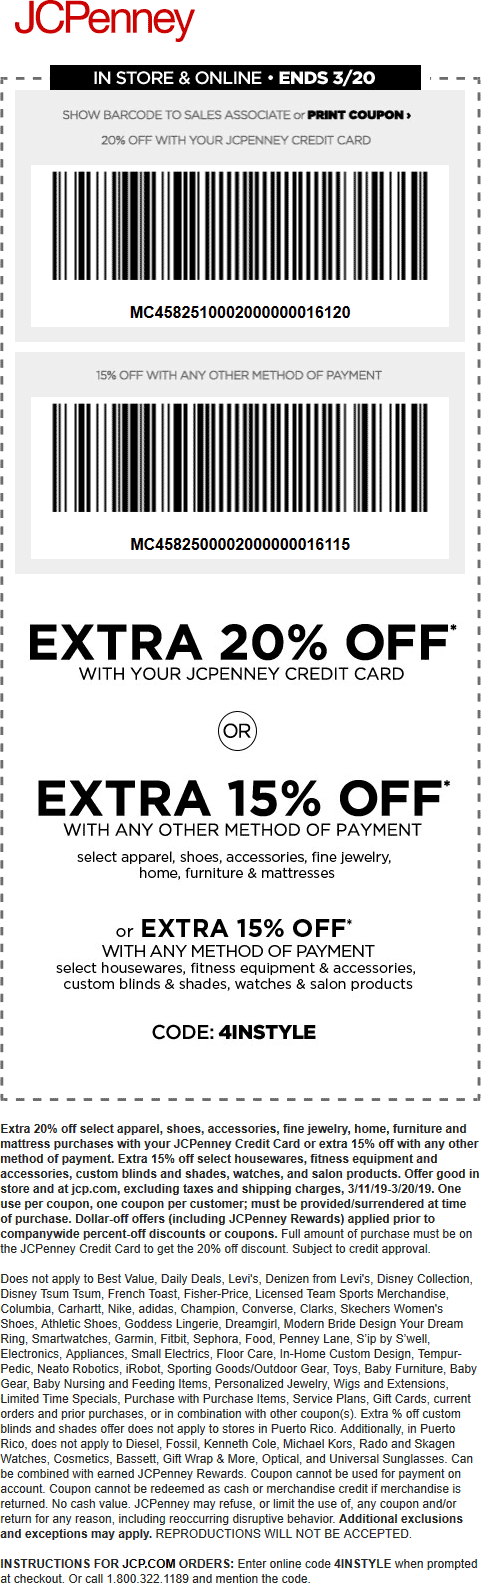 JCPenney Coupon January 2020 15% off at JCPenney, or online via promo code 4INSTYLE